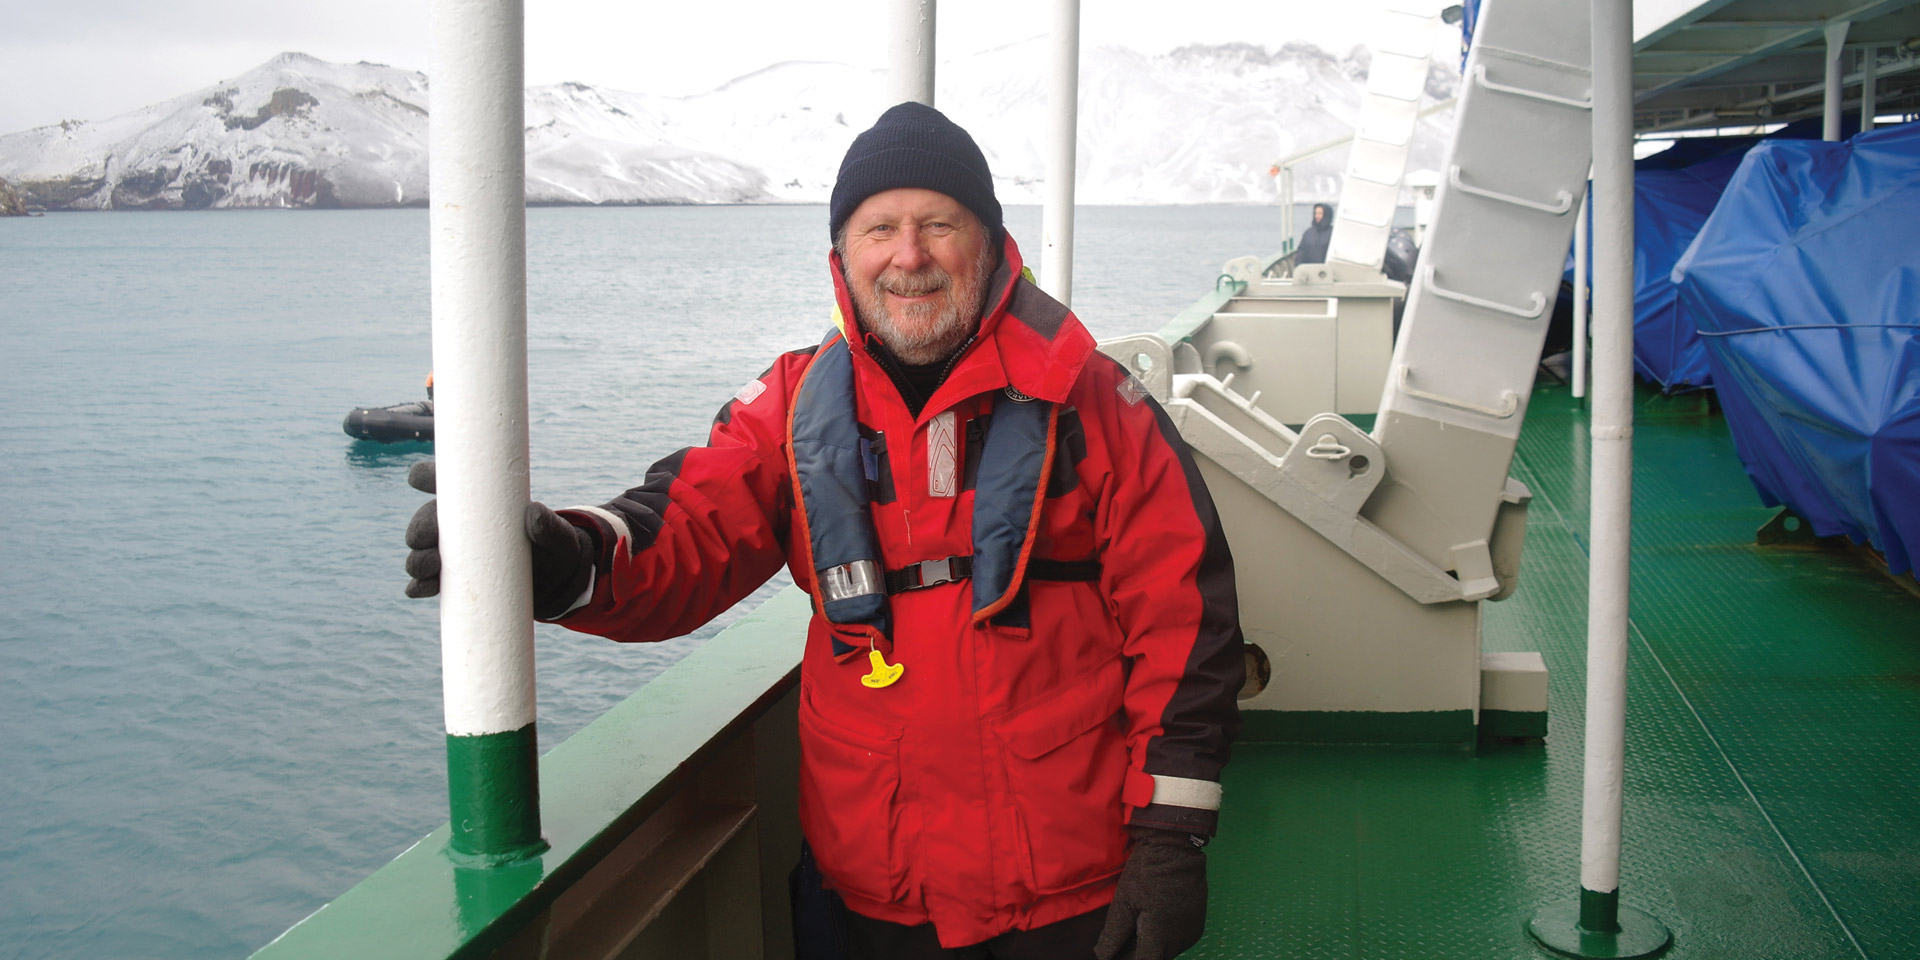 Ted in Antarctica